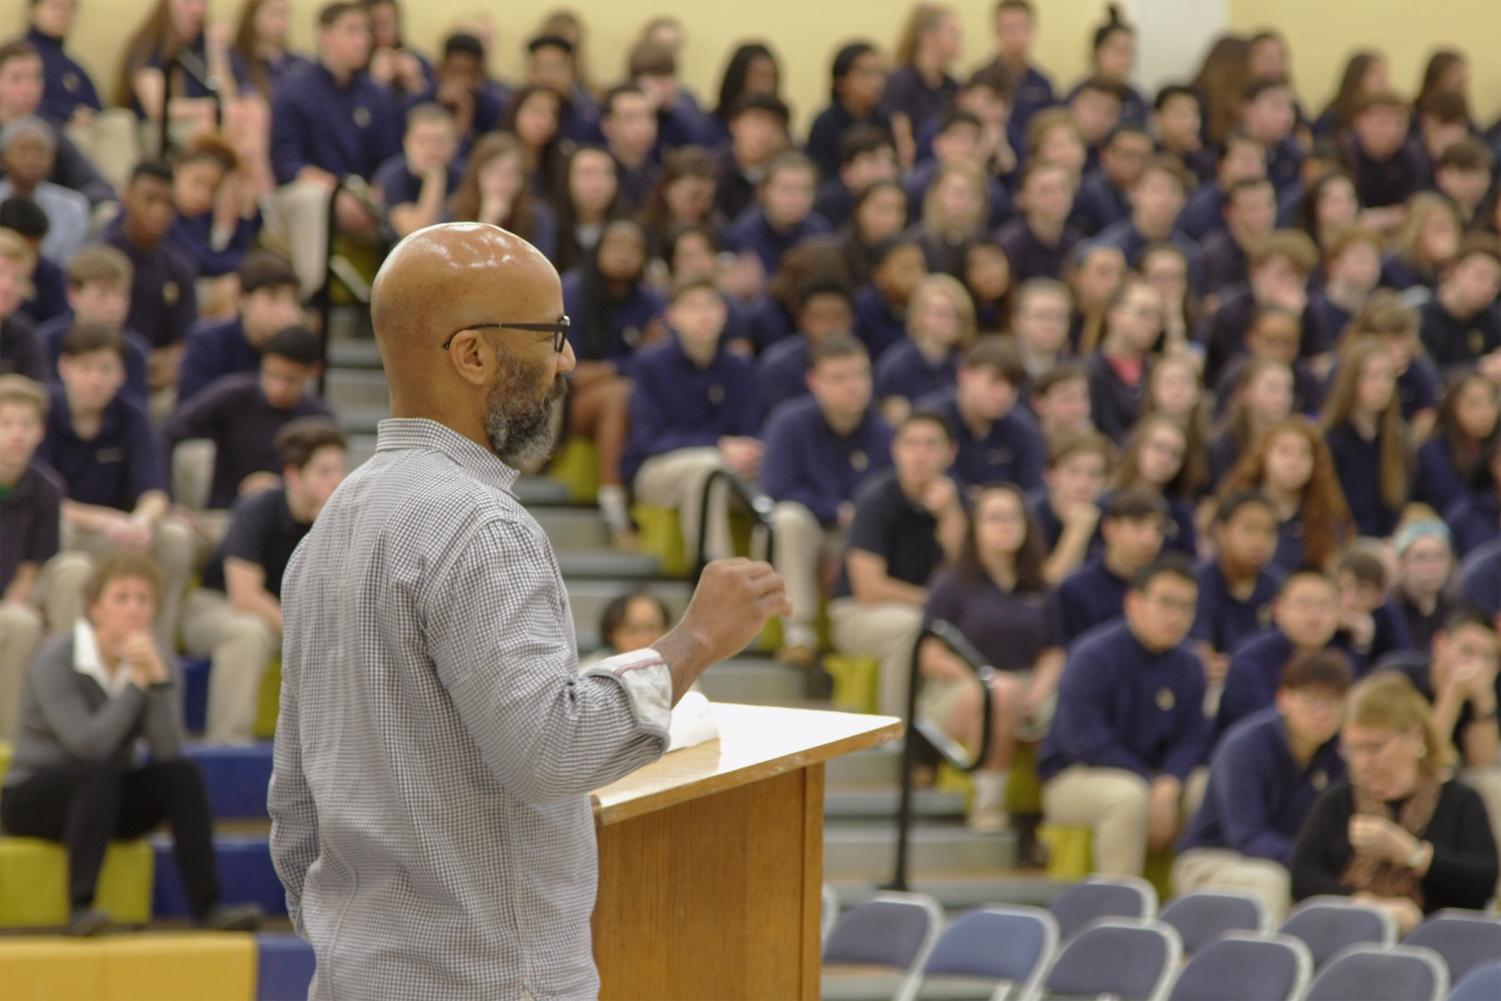 On February 2nd, Good Counsel alumni Kevin Blackistone came to GC to give students a talk on diversity. Taken by: Paul Kennedy